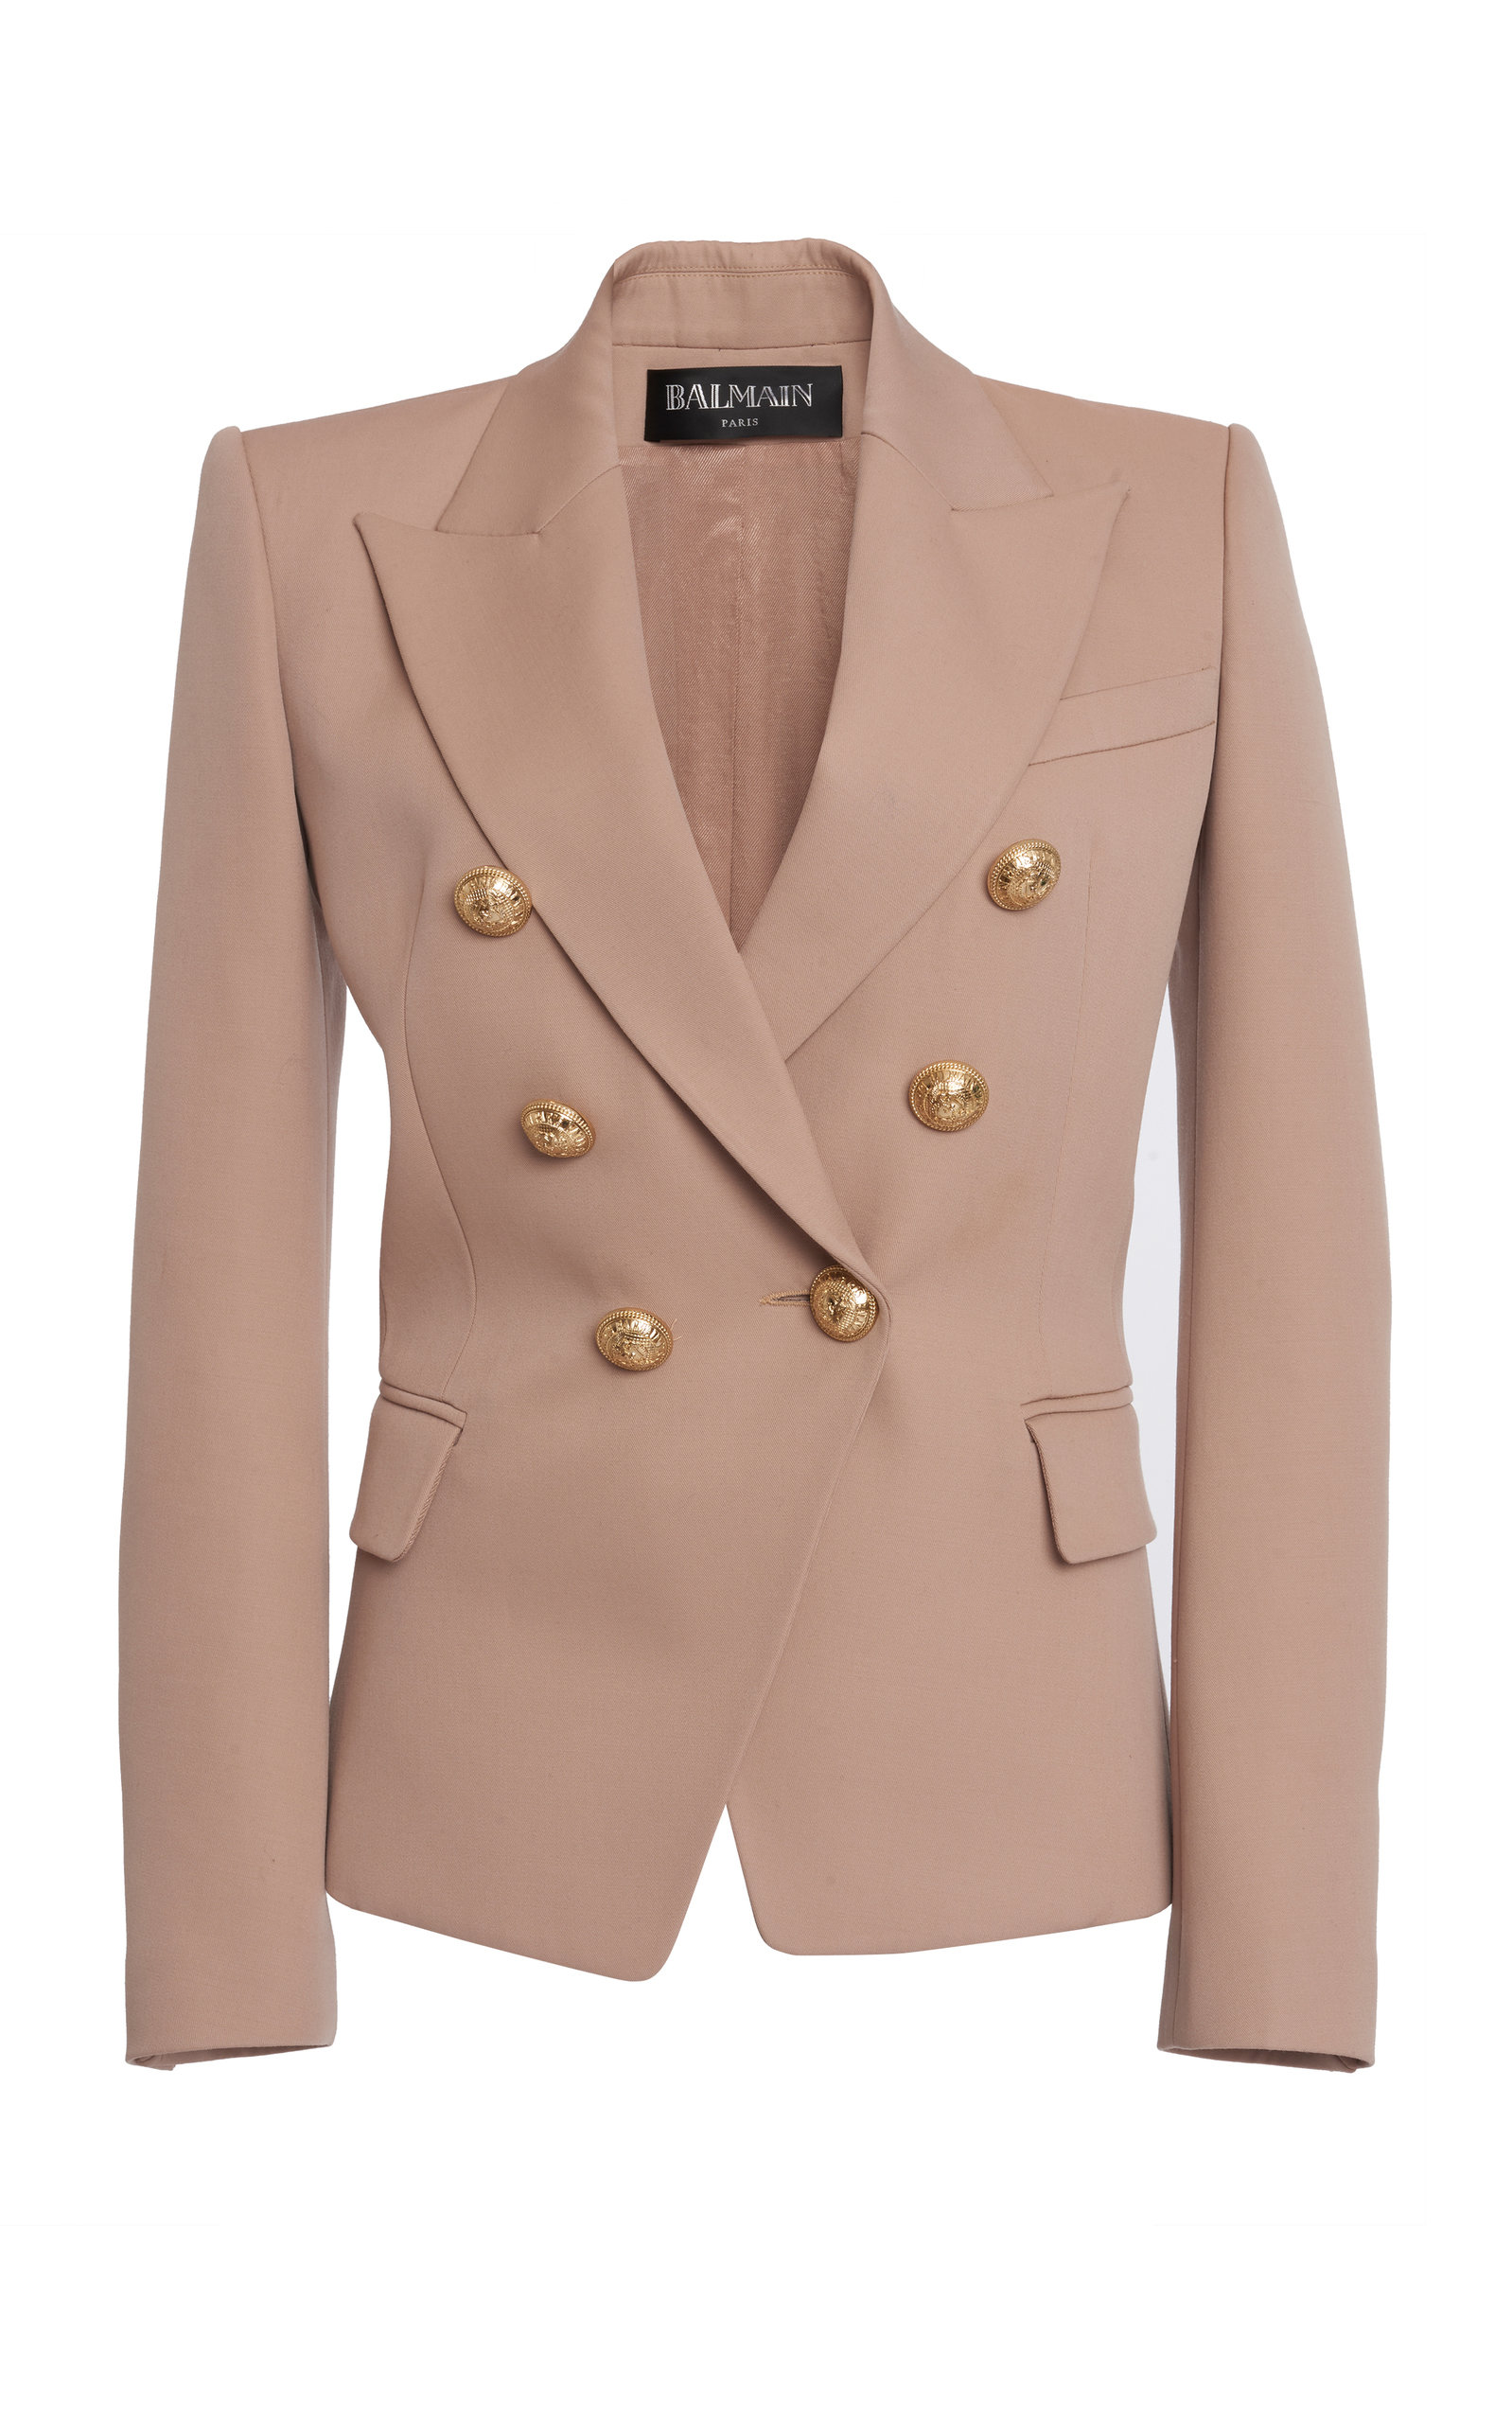 Balmain Blazers Double-Breasted Buttoned Wool Blazer